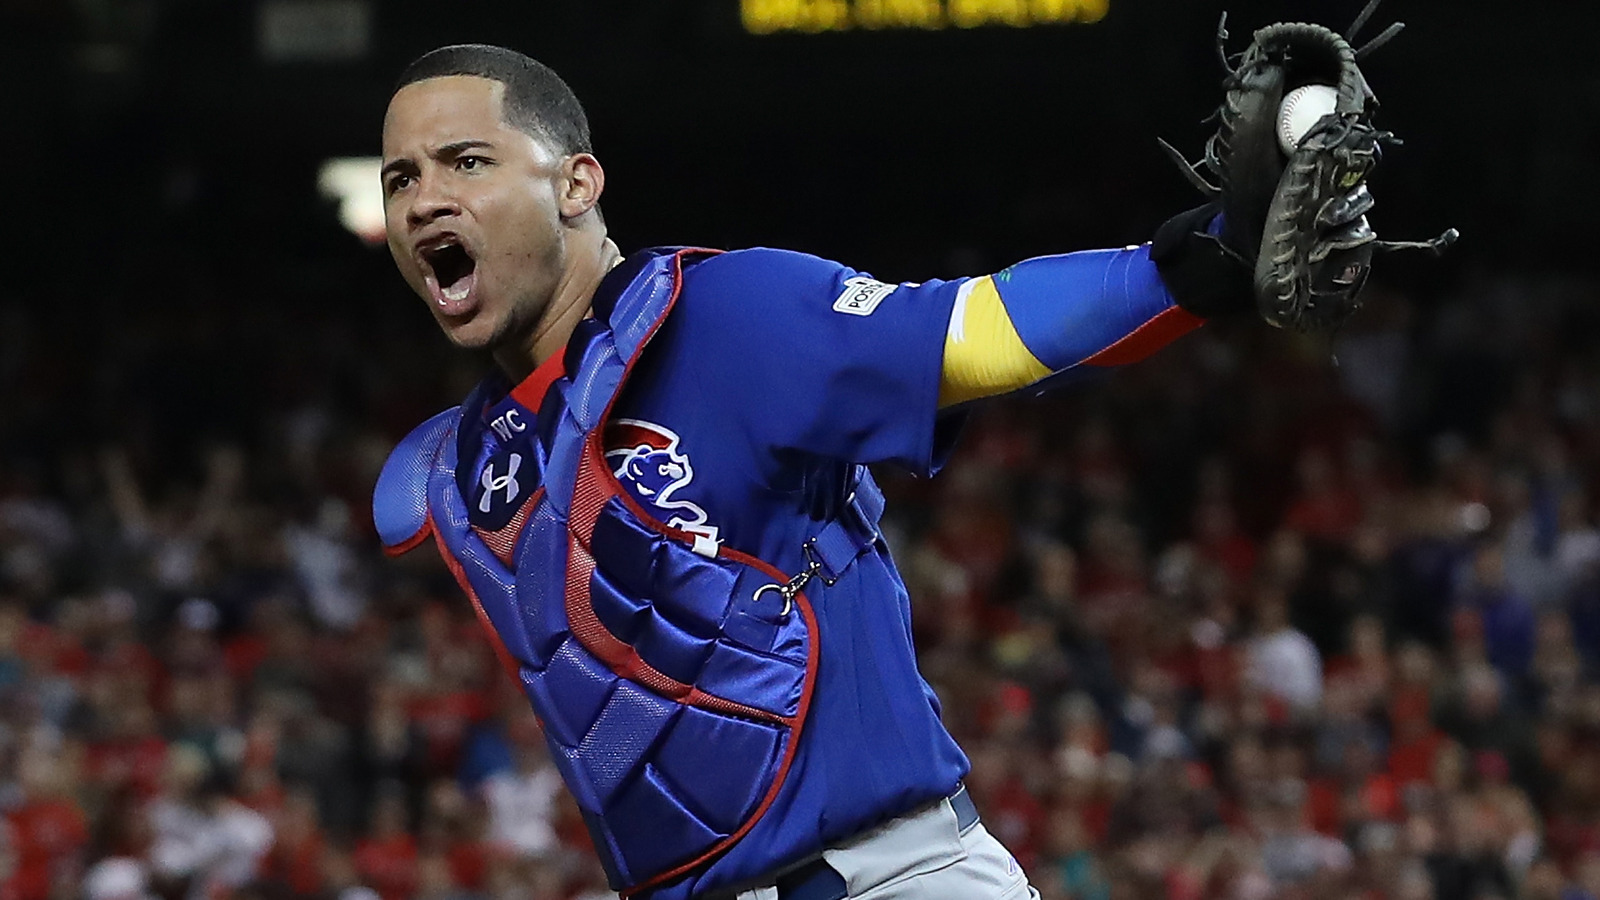 Cubs edge past Nationals to reach NLCS